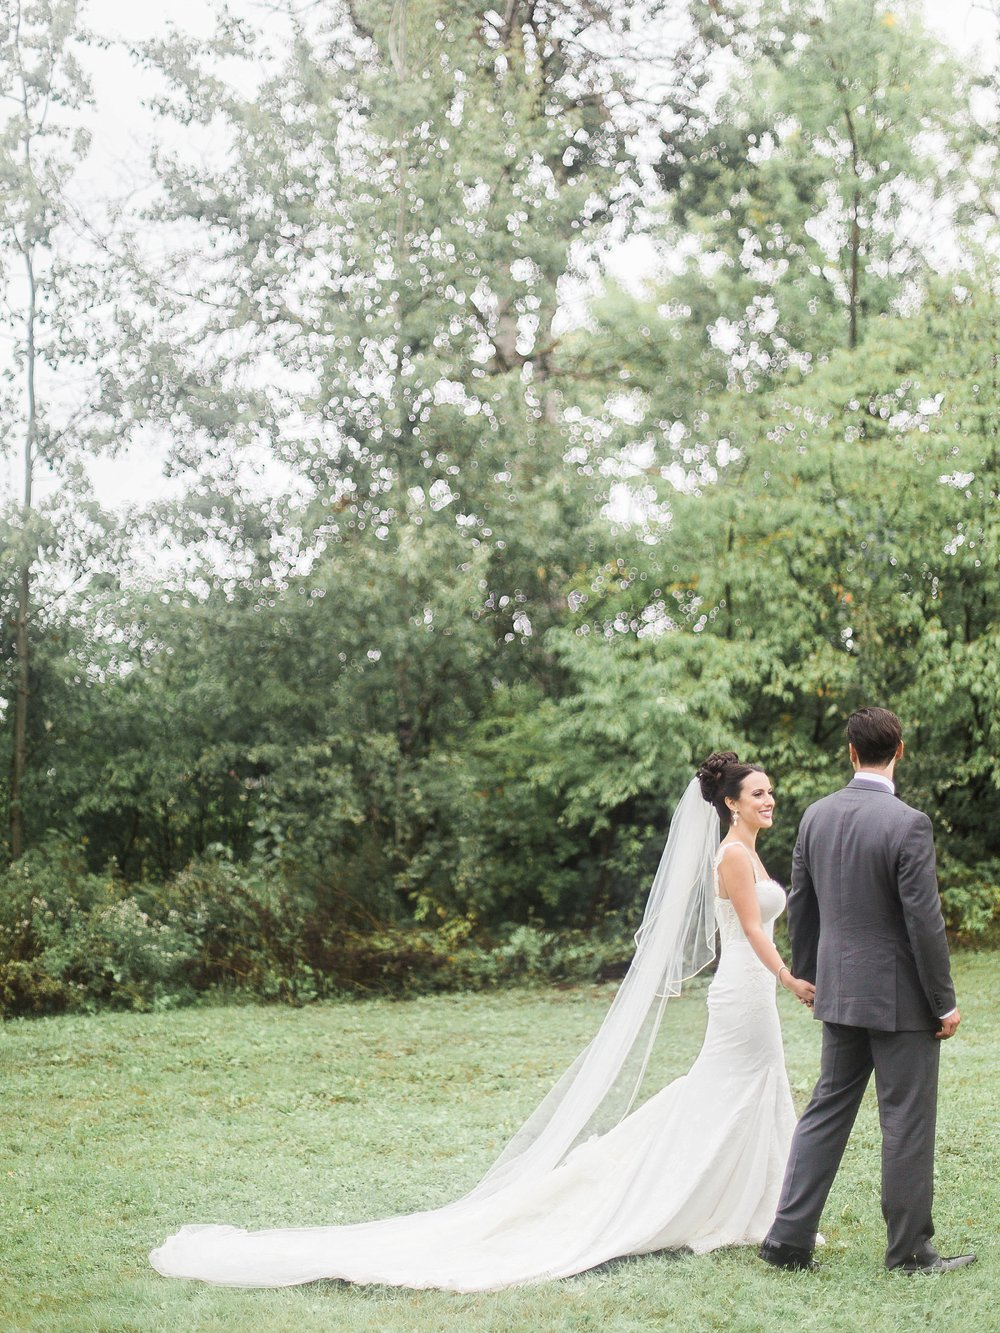 Bride and Groom portraits | Light & Airy photography | photographed by Toronto Ontario Wedding Photographer Keila Marie Photography